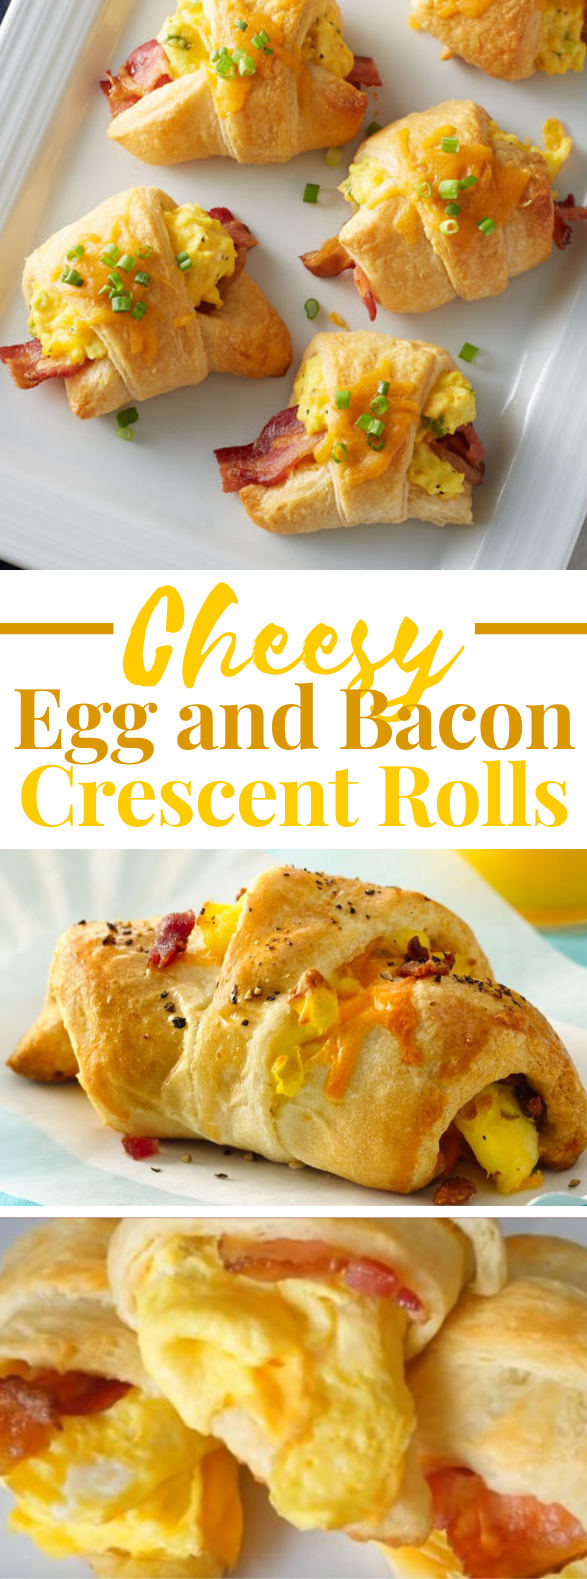 Cheesy Egg and Bacon Crescent Rolls #diet #breakfast